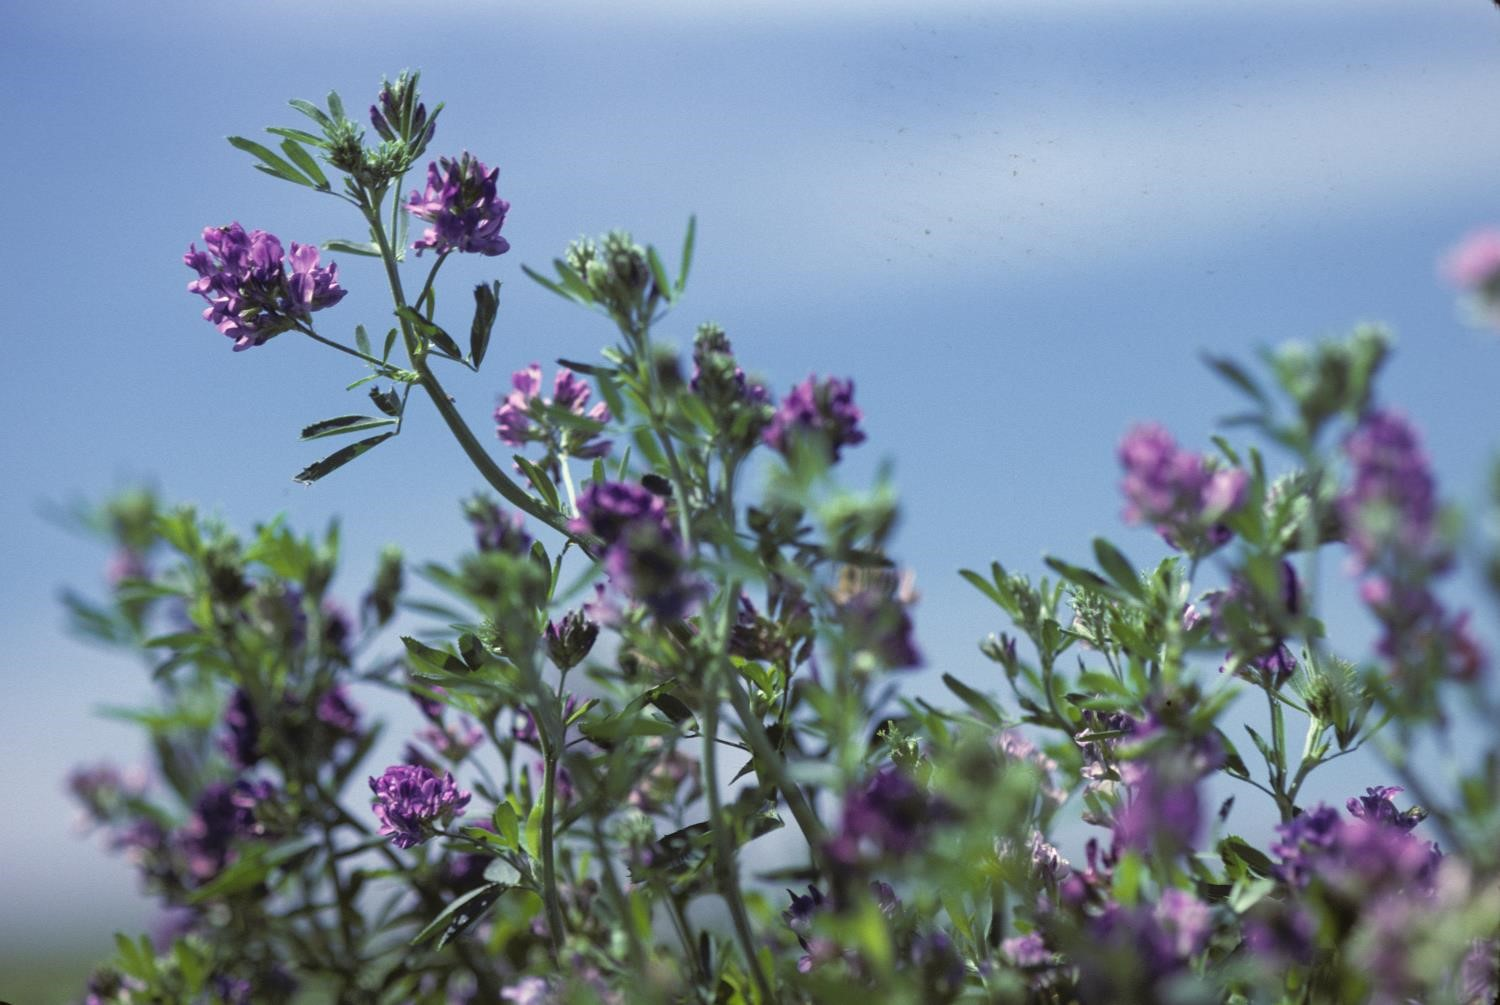 alfalfa plant with flowers in a field